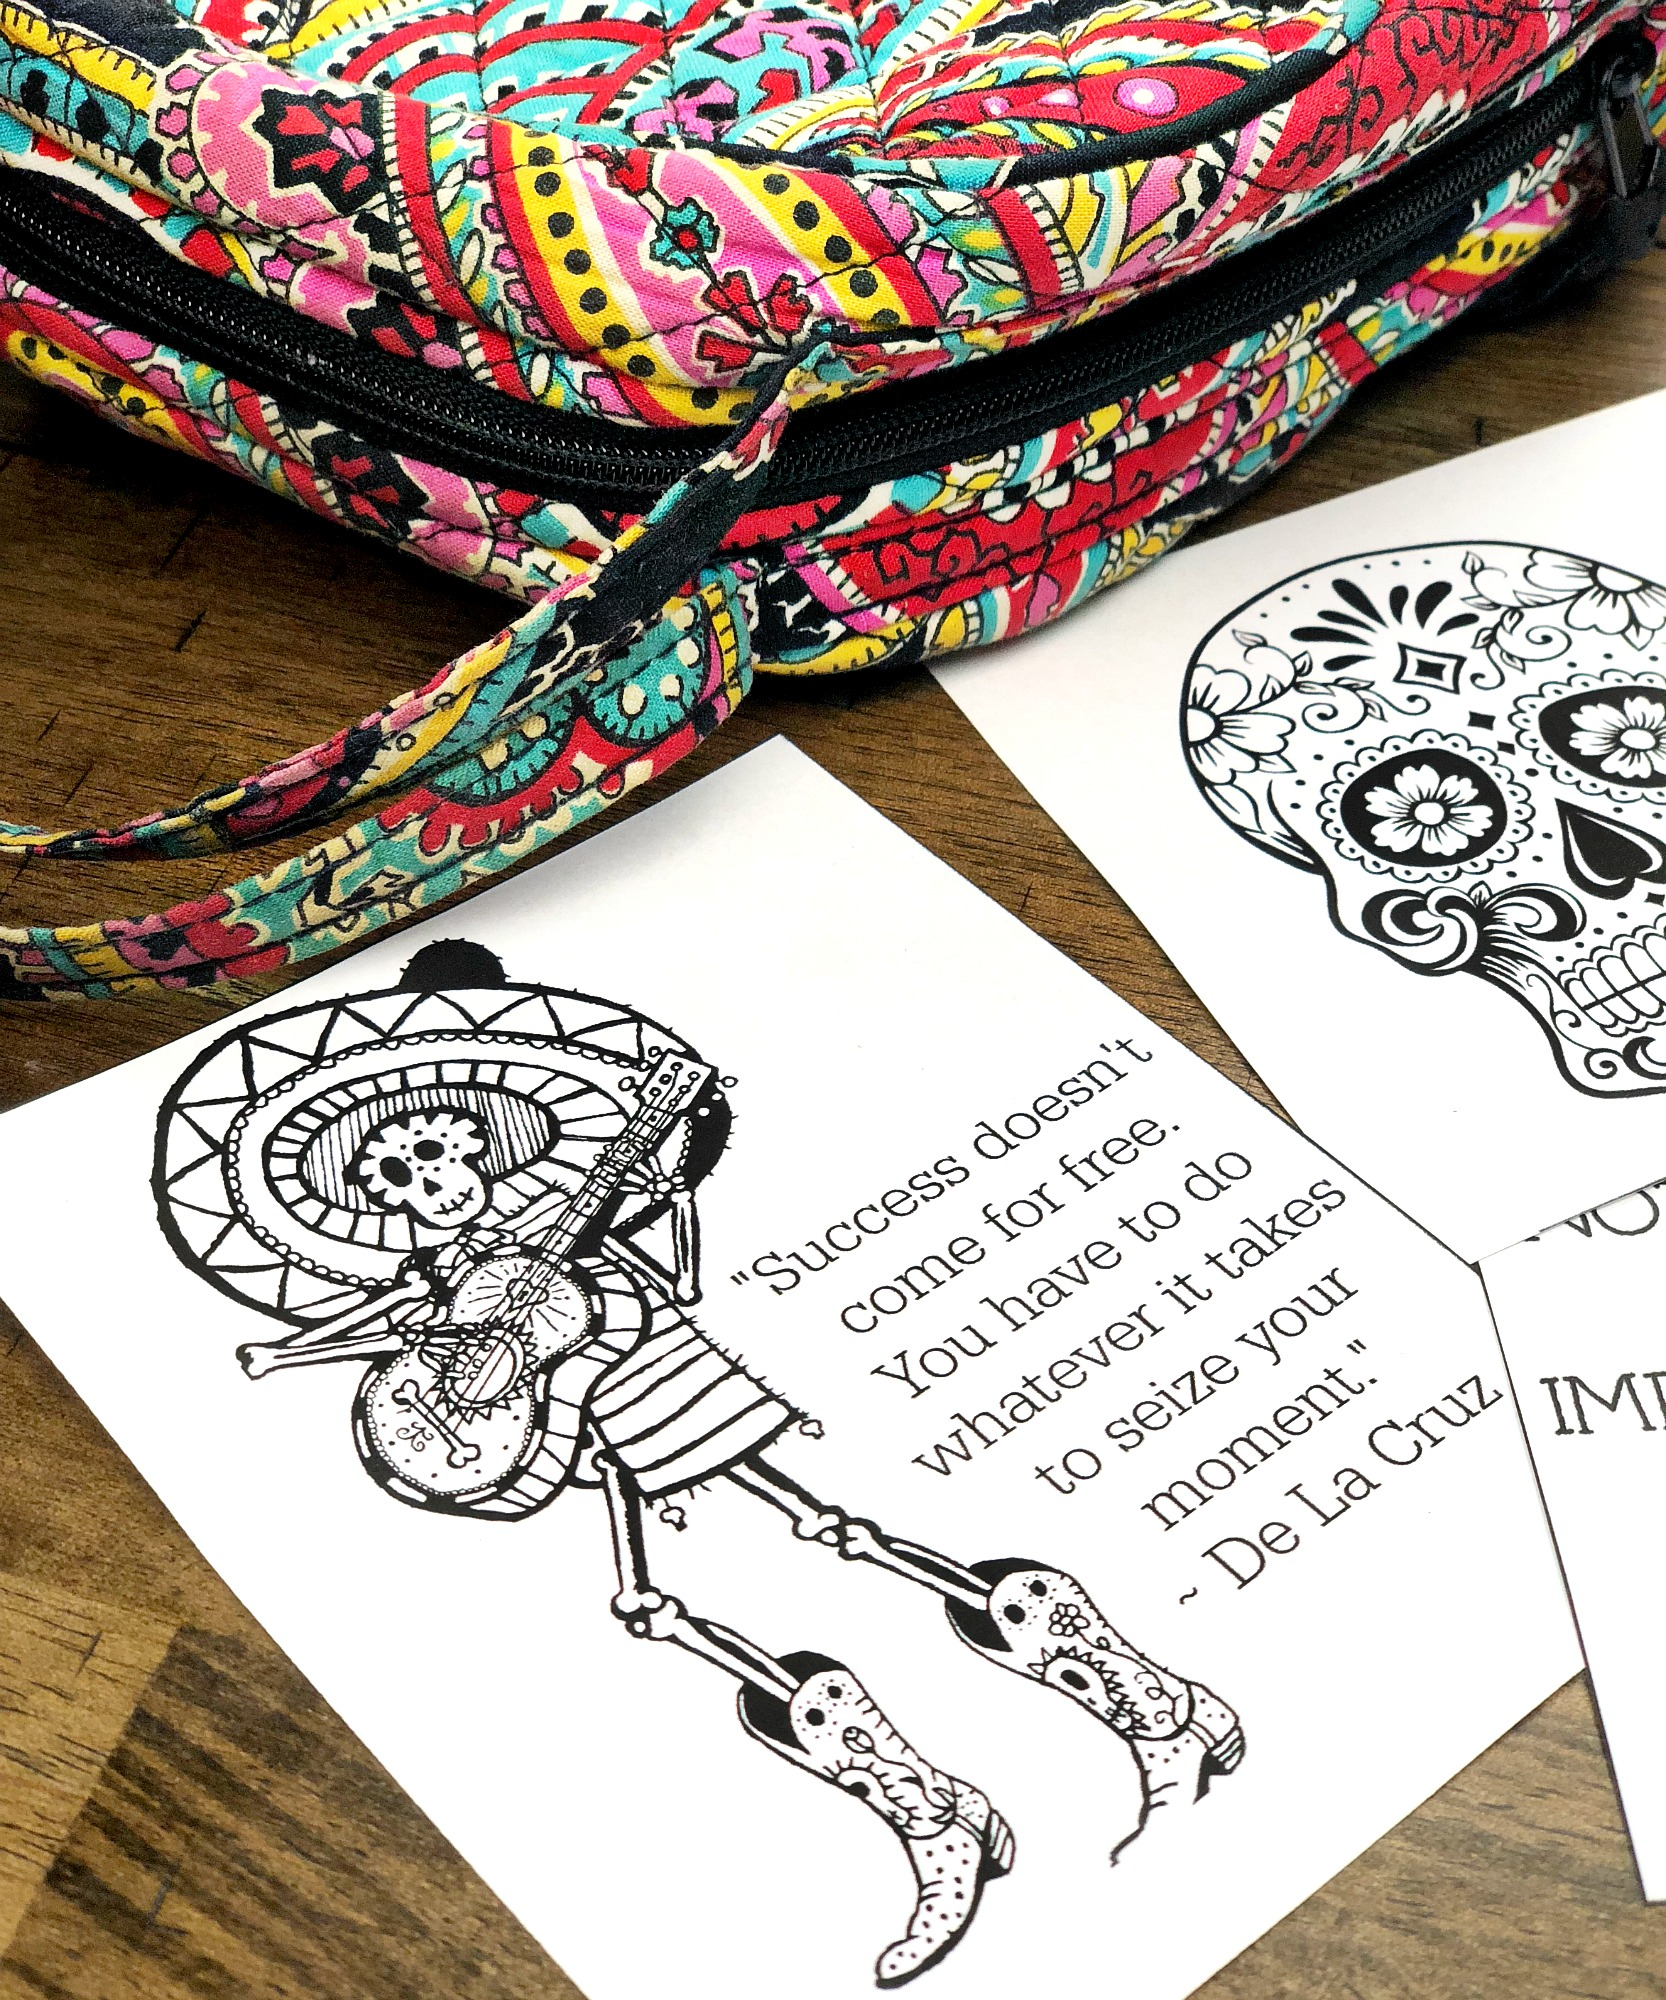 printable disney pixar coco lunchbox notes